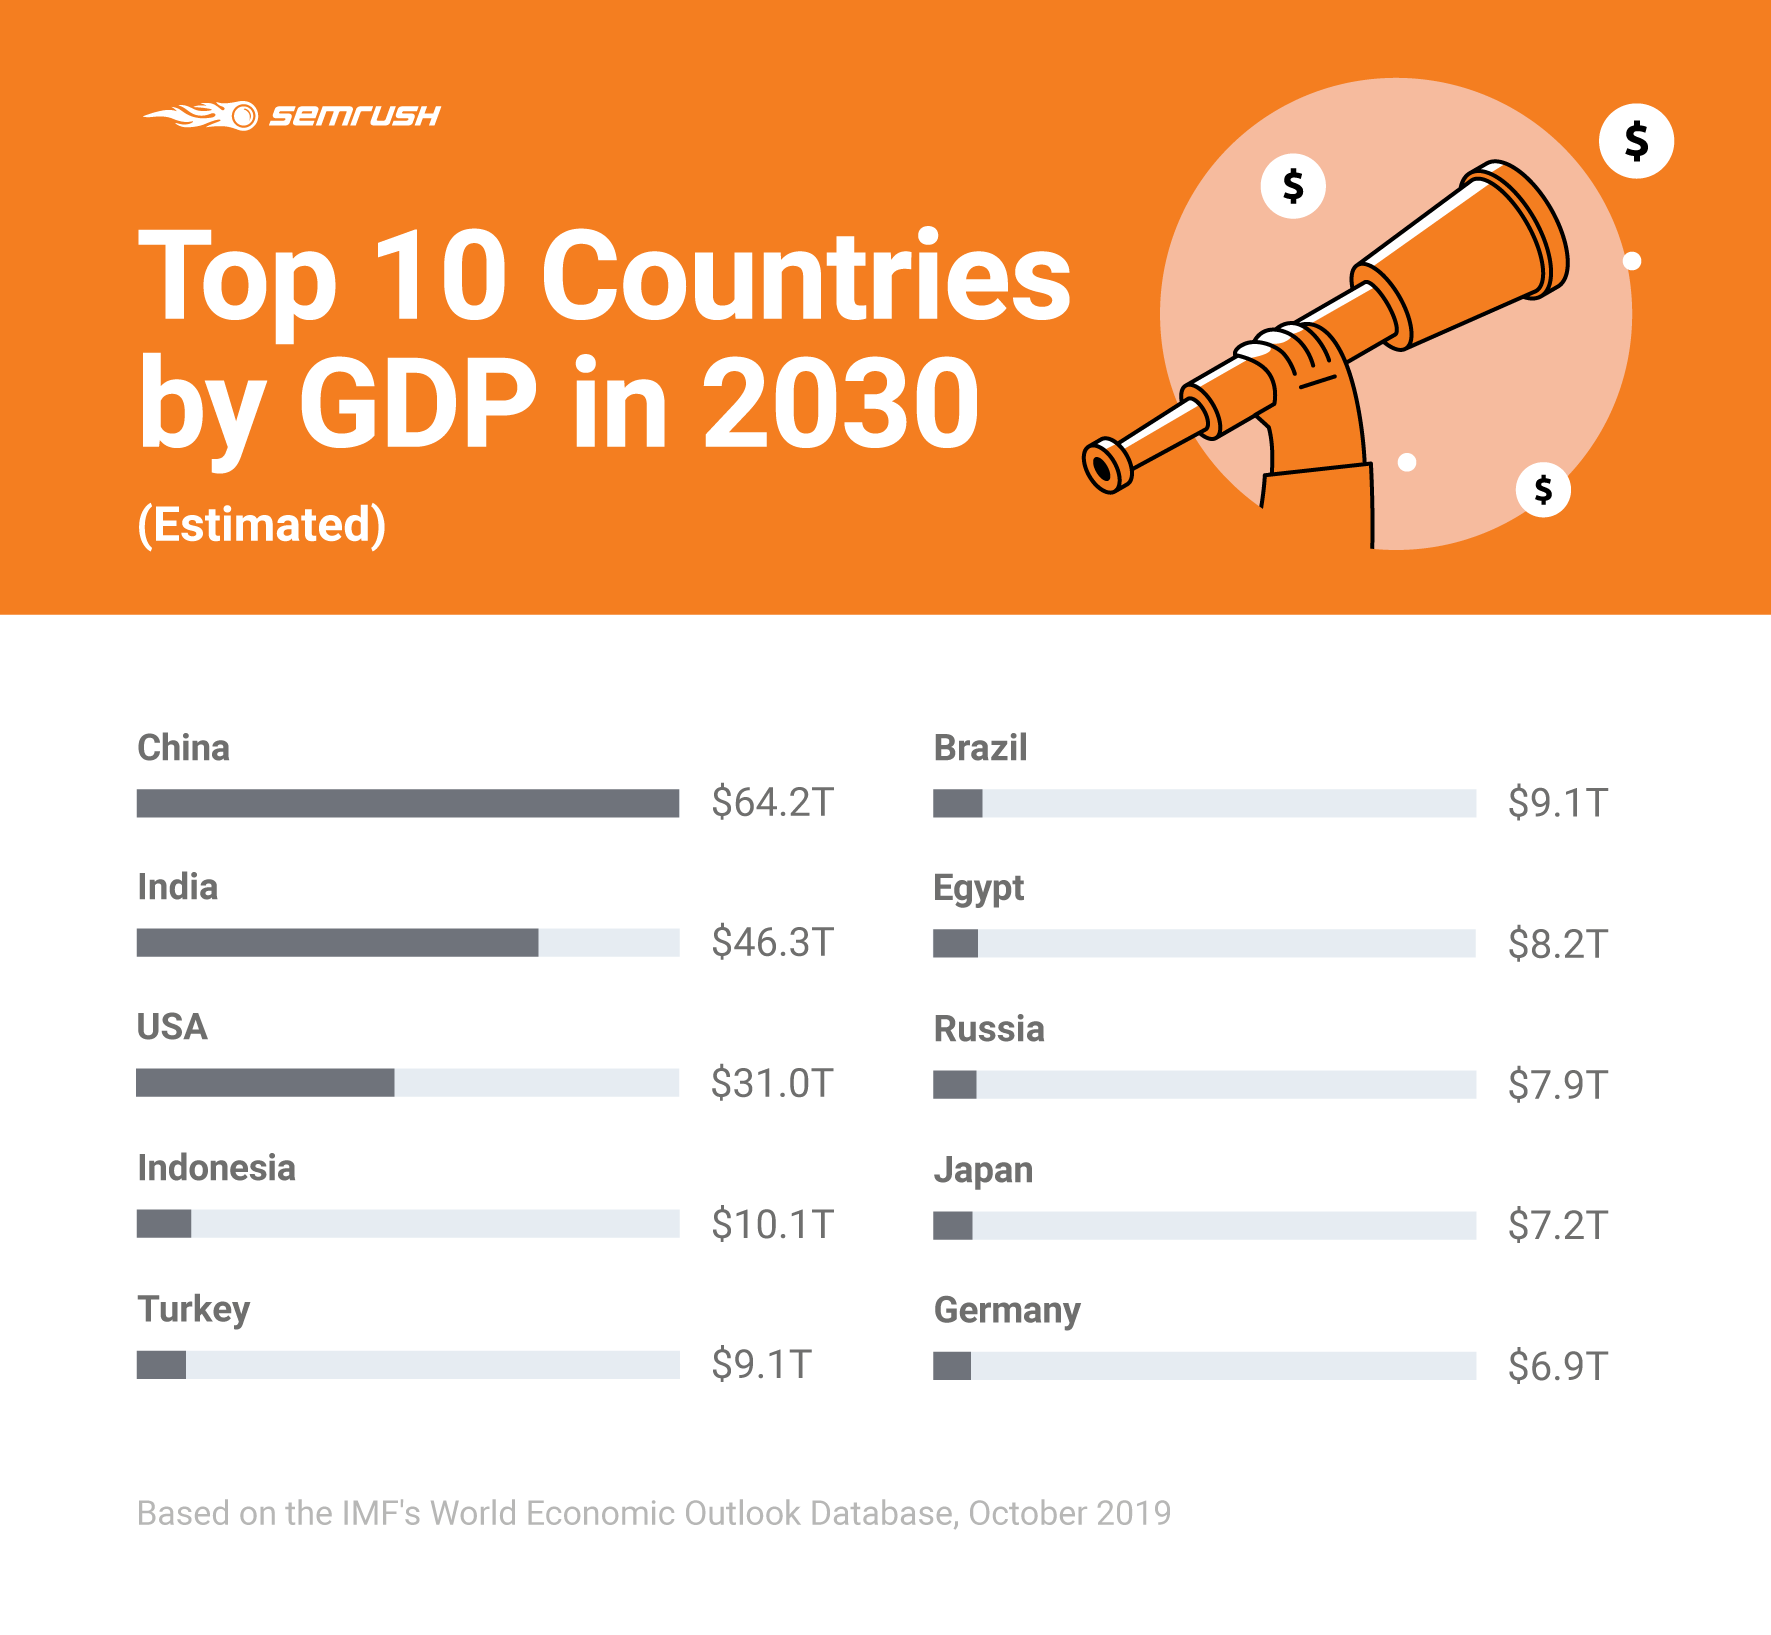 Estimated Top 10 Countries by GDP in 2030